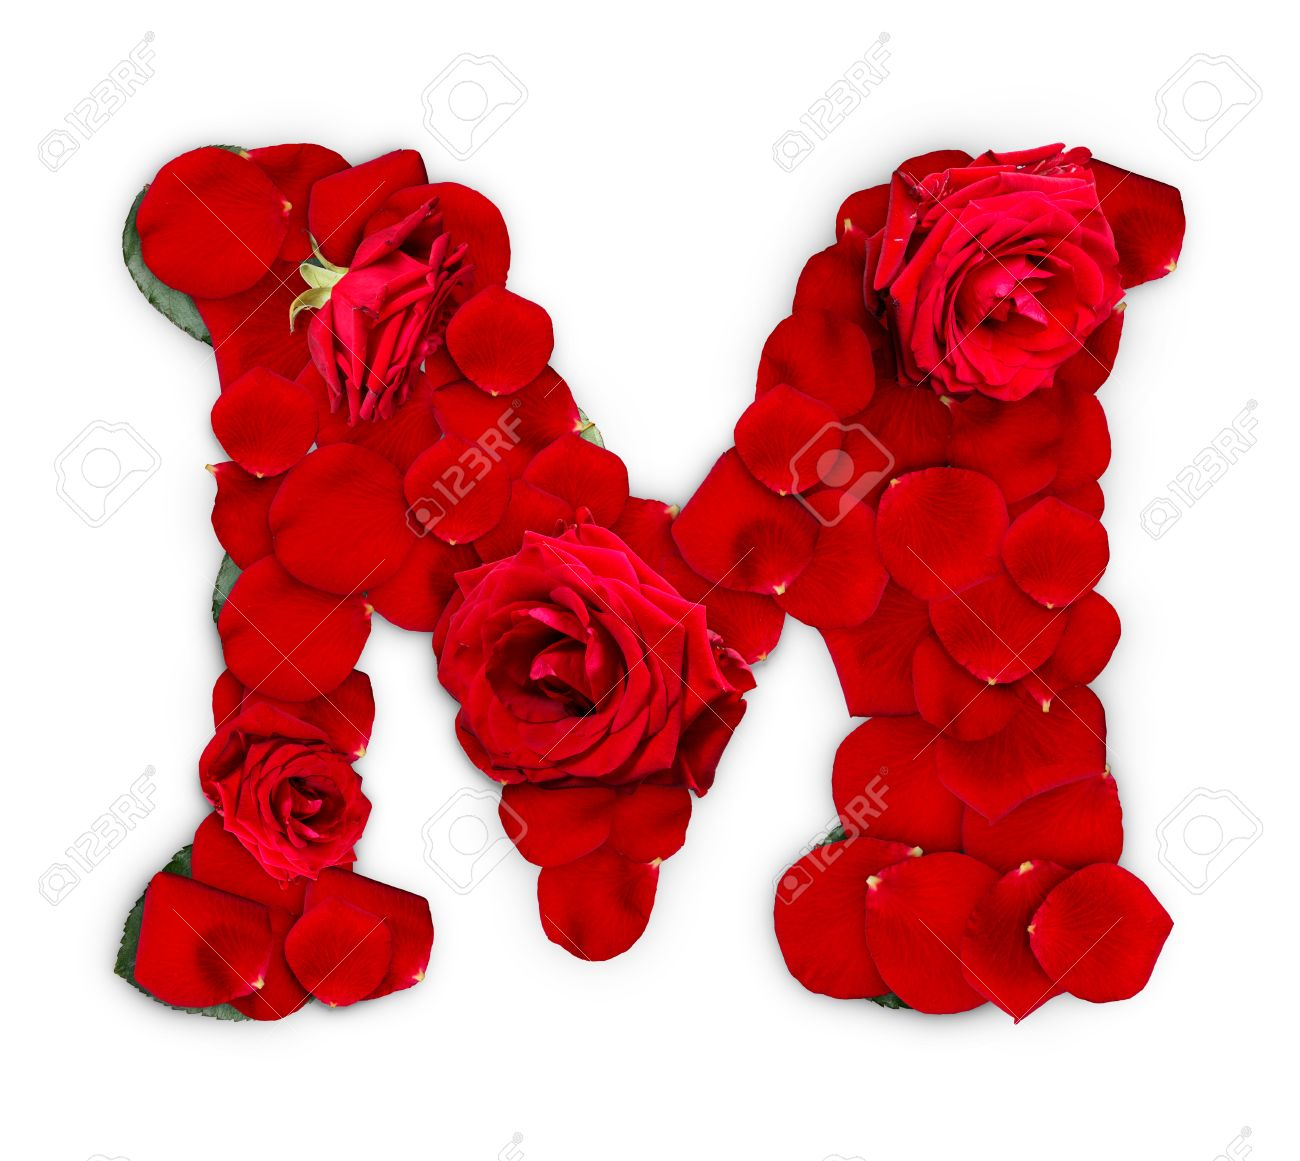 Letter M Made From Red Roses And Petals Isolated On A White Background  Stock Photo